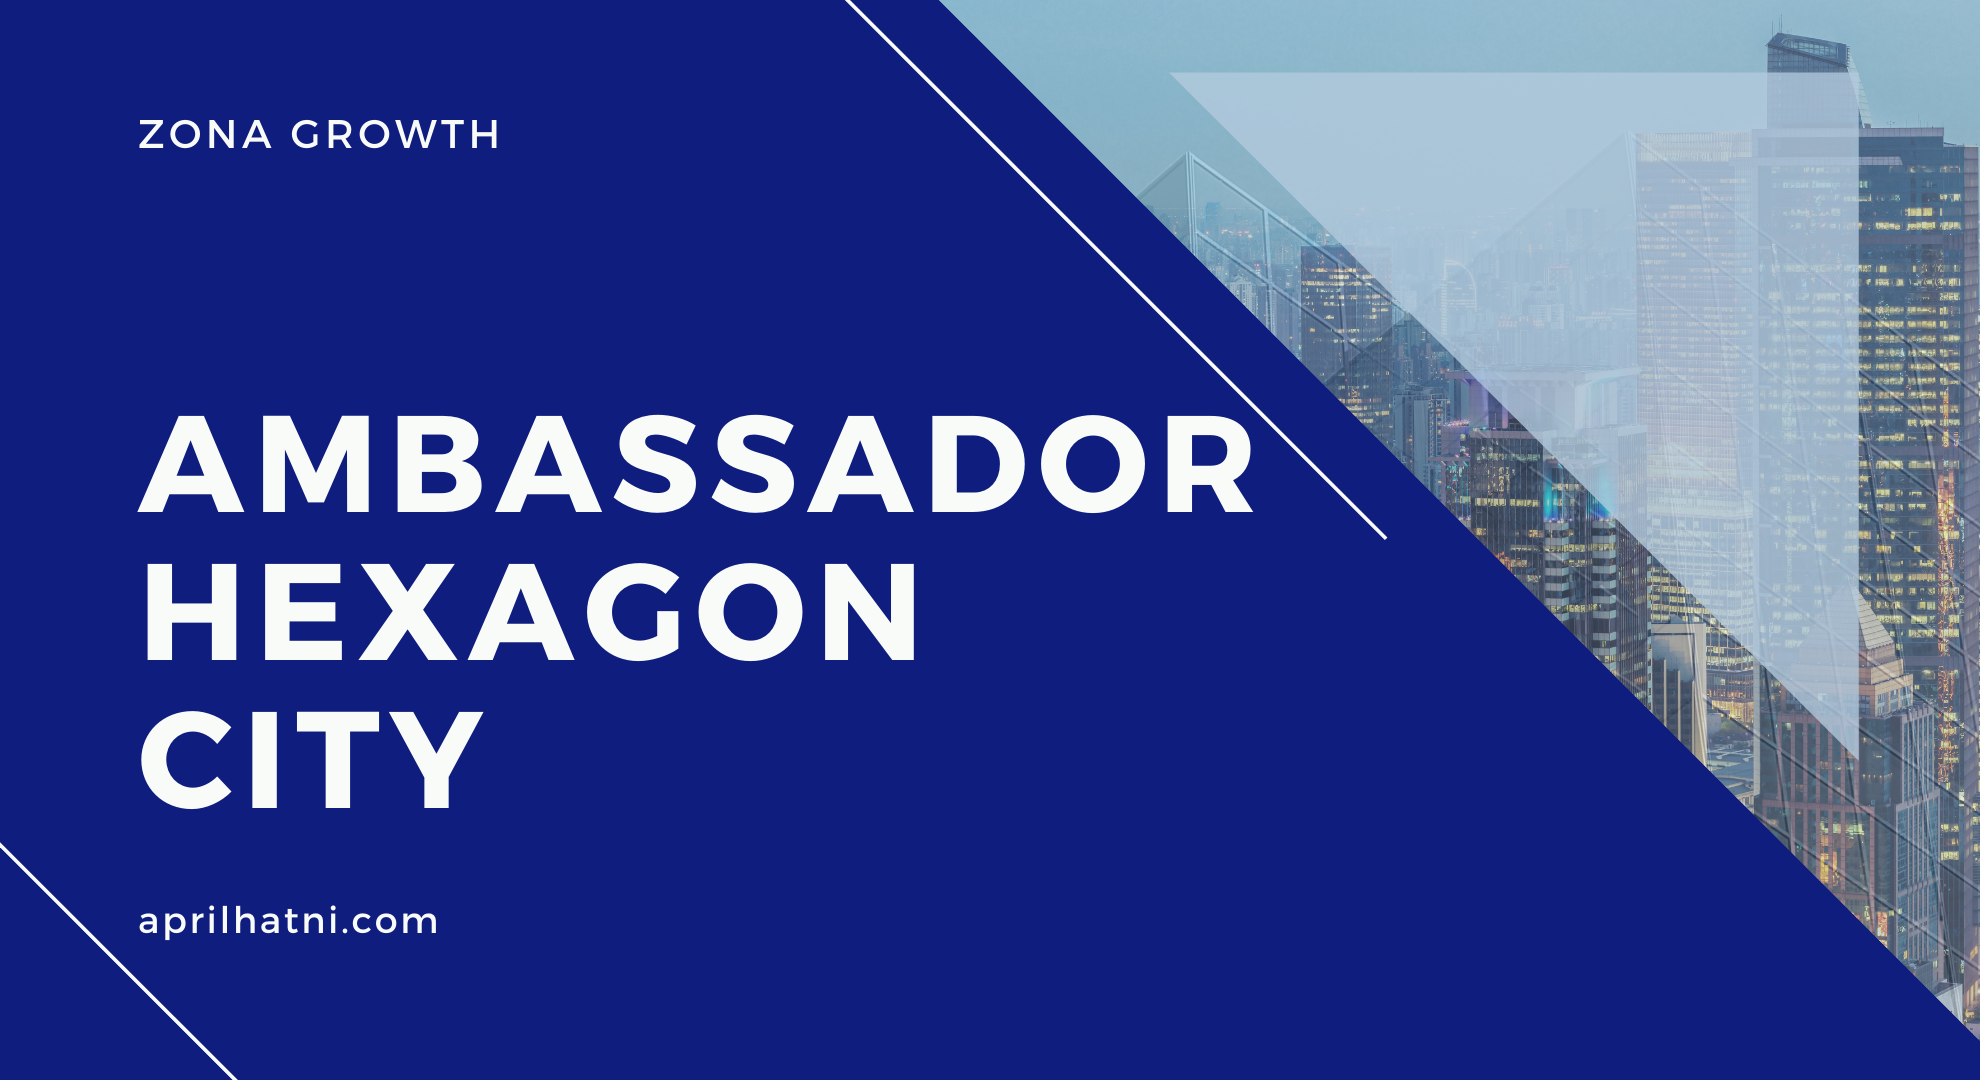 ambassador hexagon city